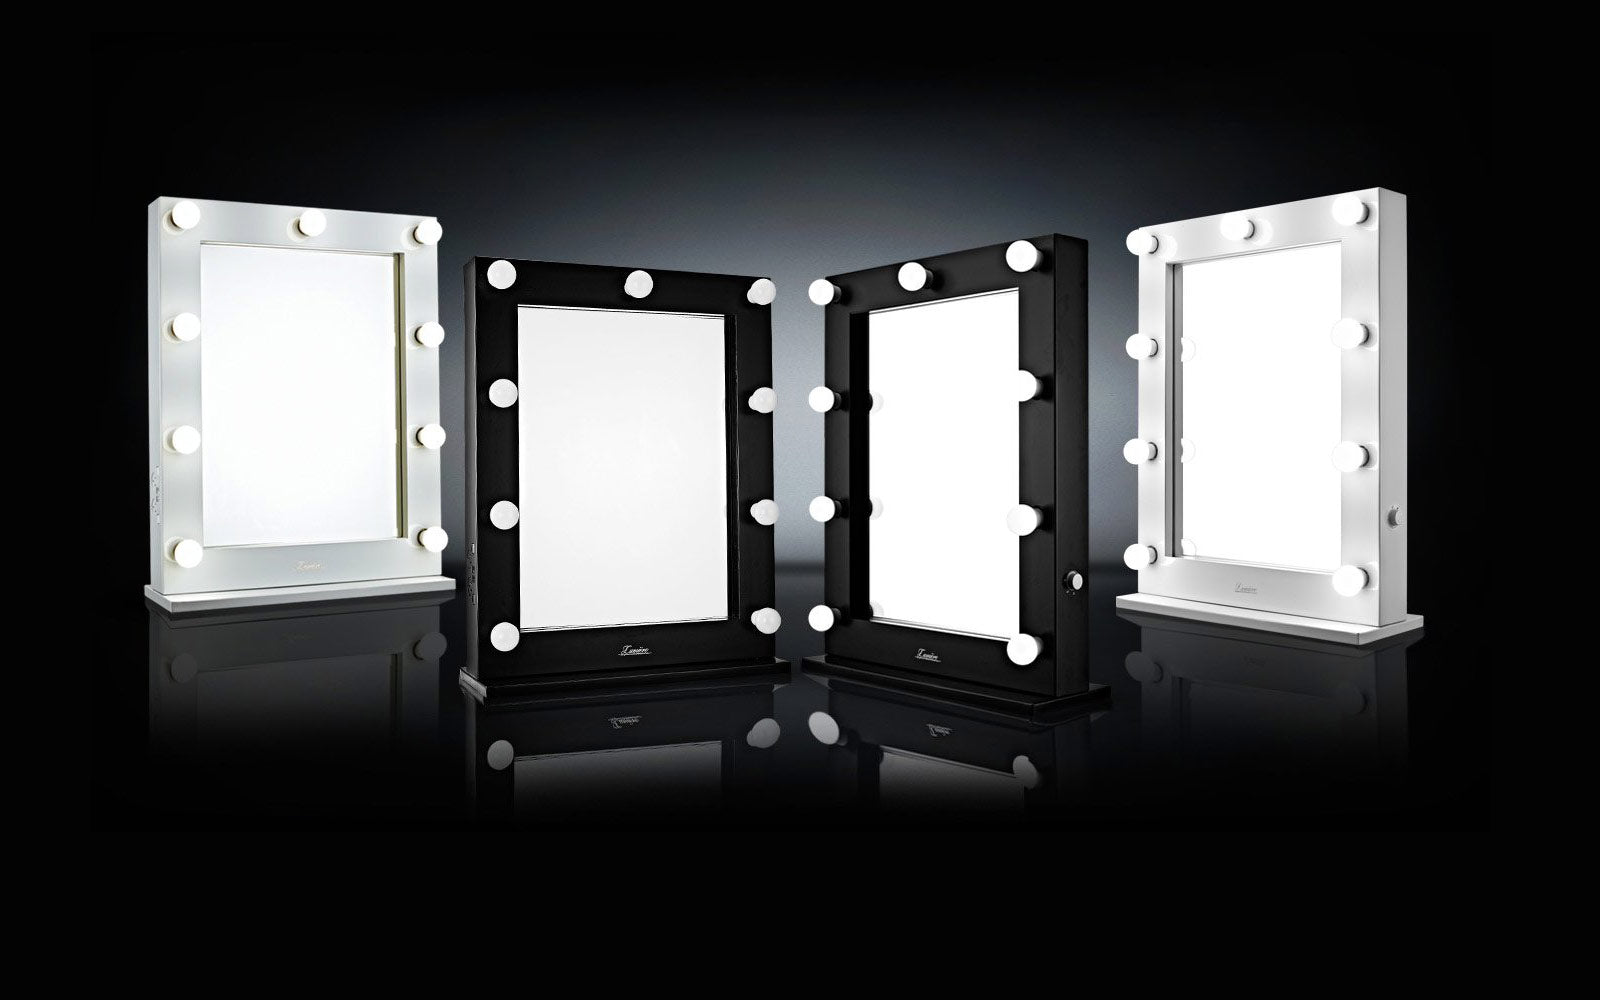 Lighted Makeup Mirrors Illuminated Hollywood Vanity Australia Lighting Diagram Perfect Starts With